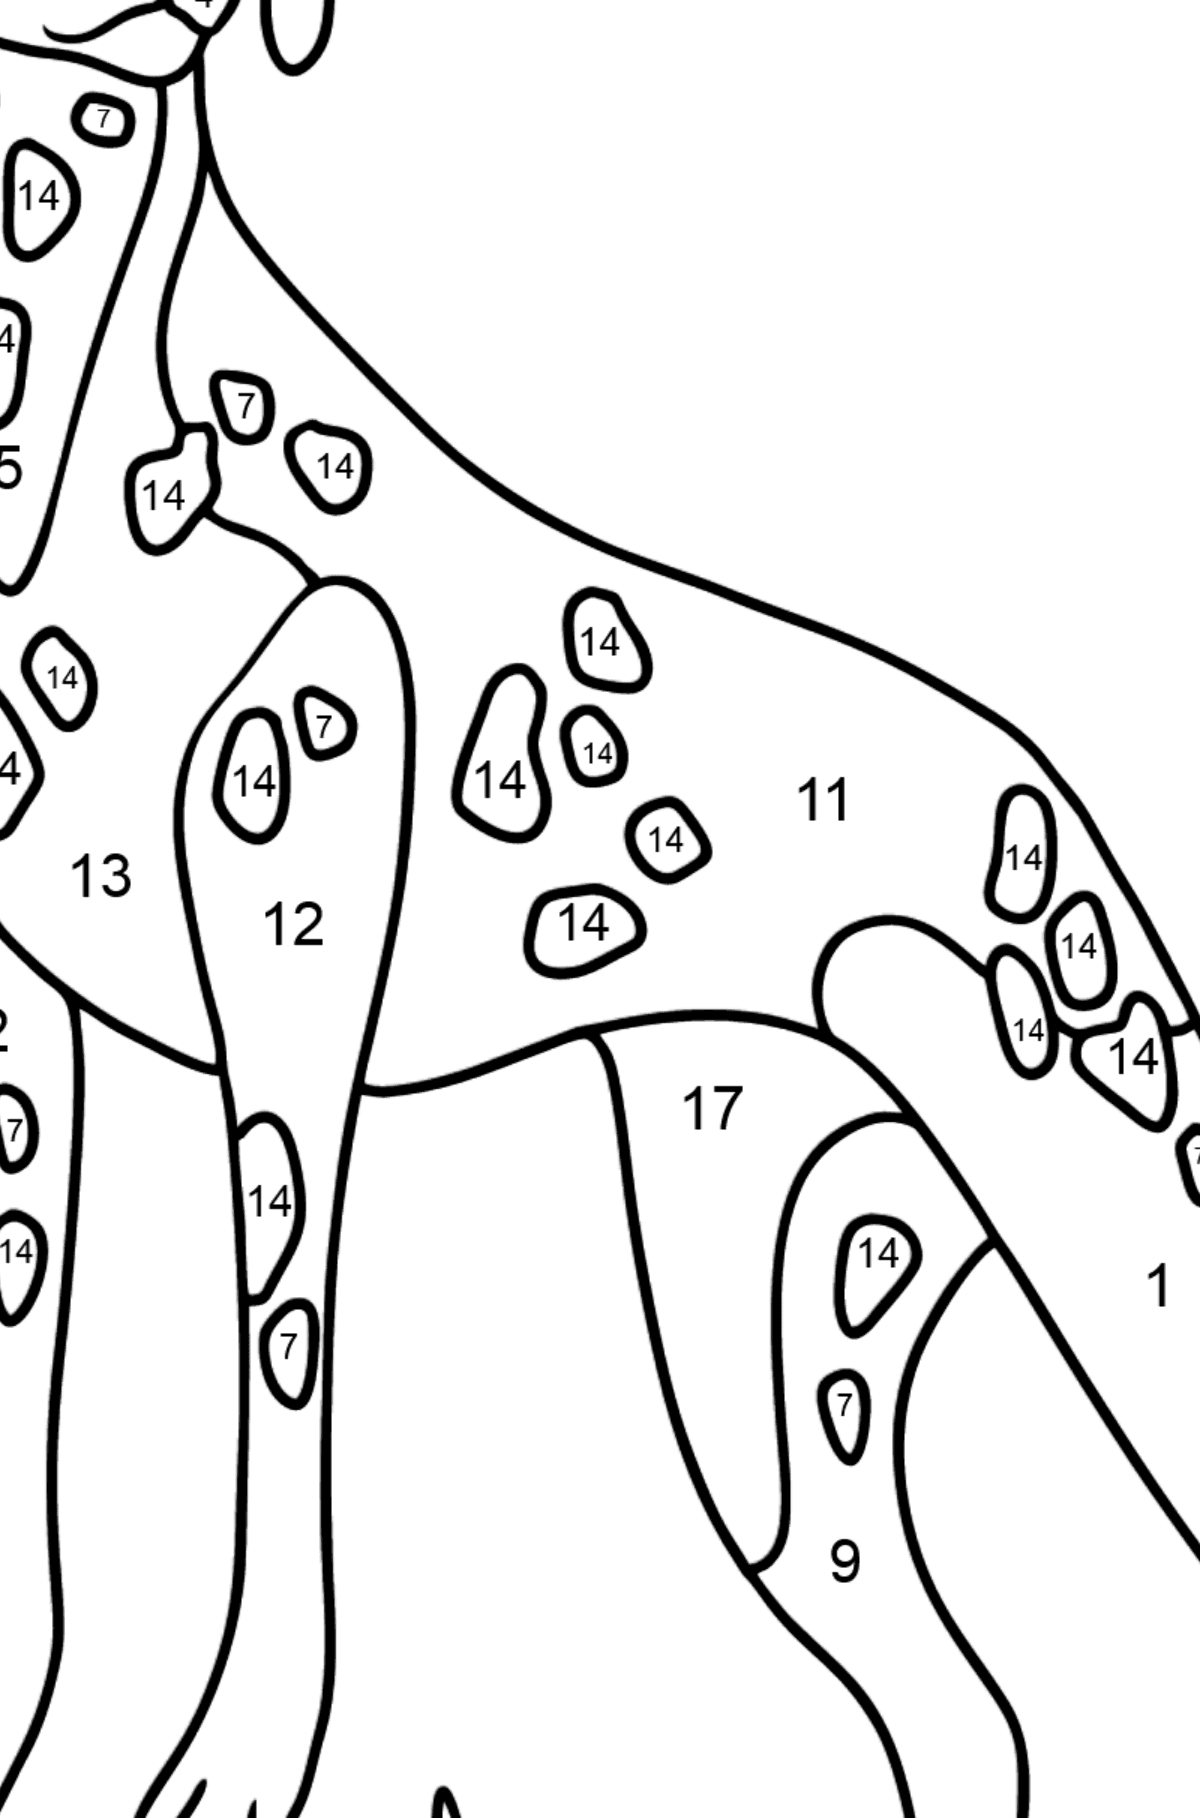 Dalmatian coloring page - Coloring by Numbers for Kids